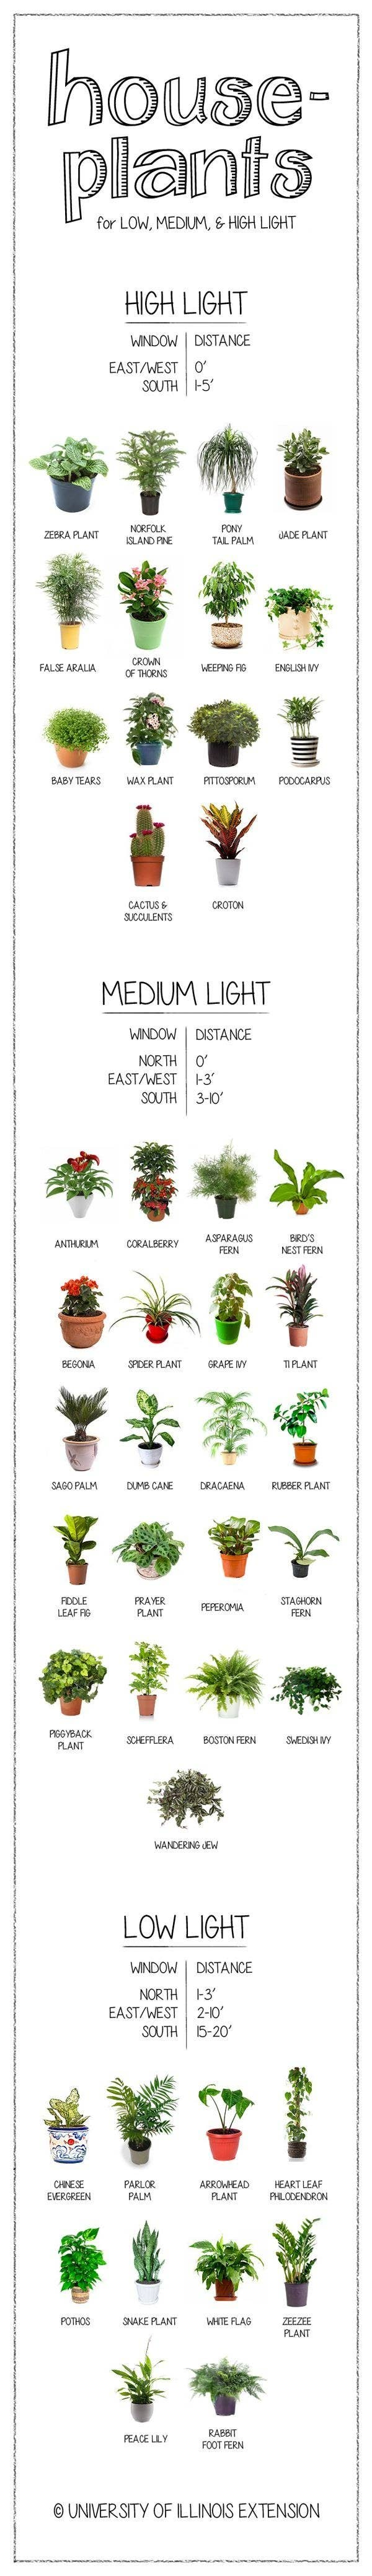 Houseplants Care Guide